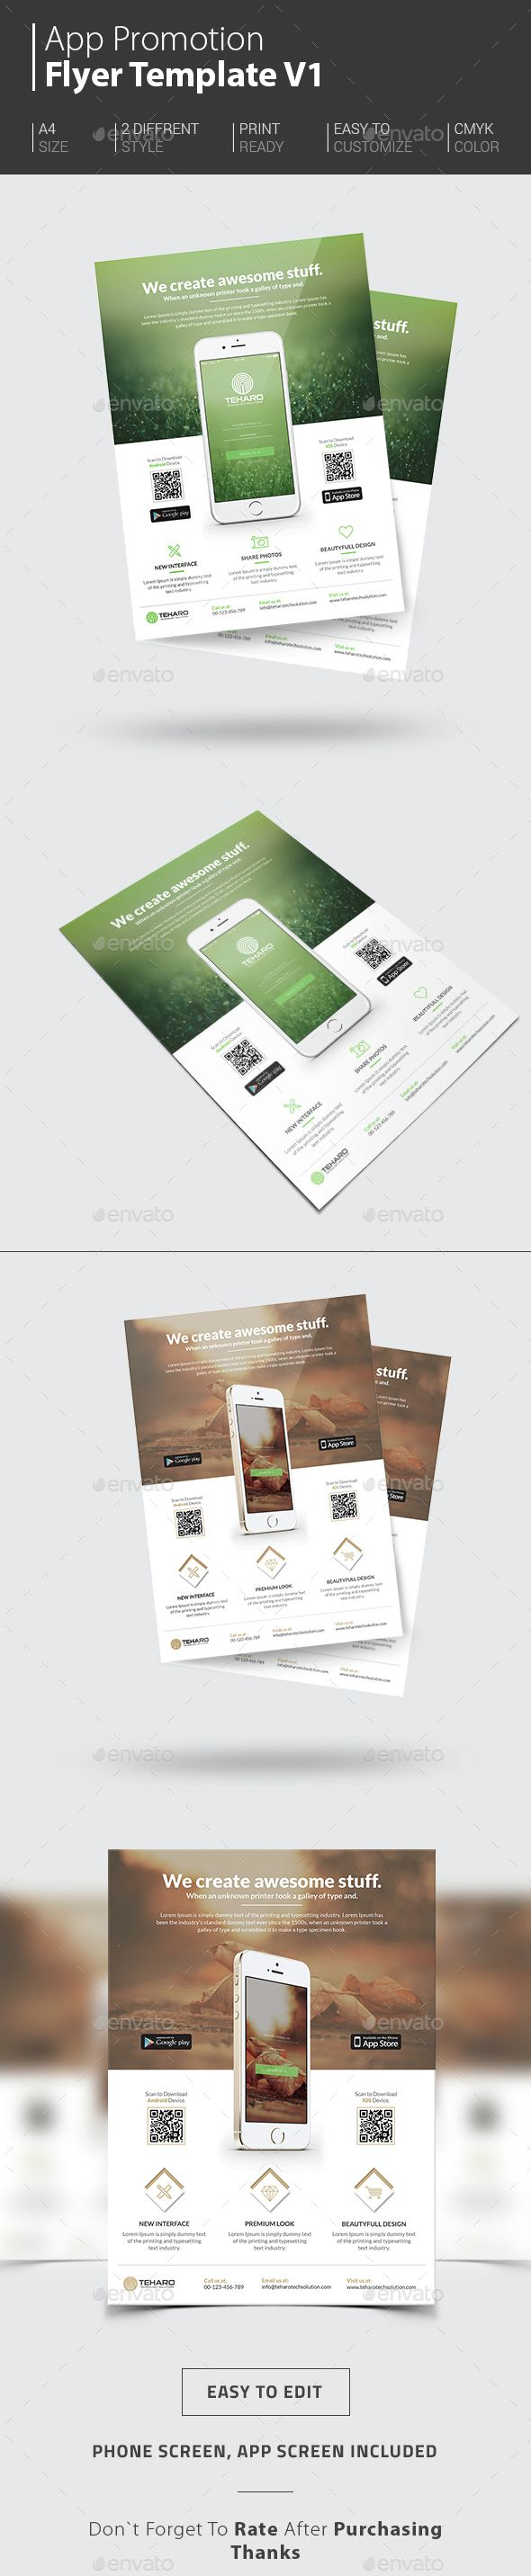 app promotion flyer marketing promotion and apps app flyer aka mobile app flyer is the coolest app promotion flyer for mobile app marketing either you re launching a new mobile app or you re just